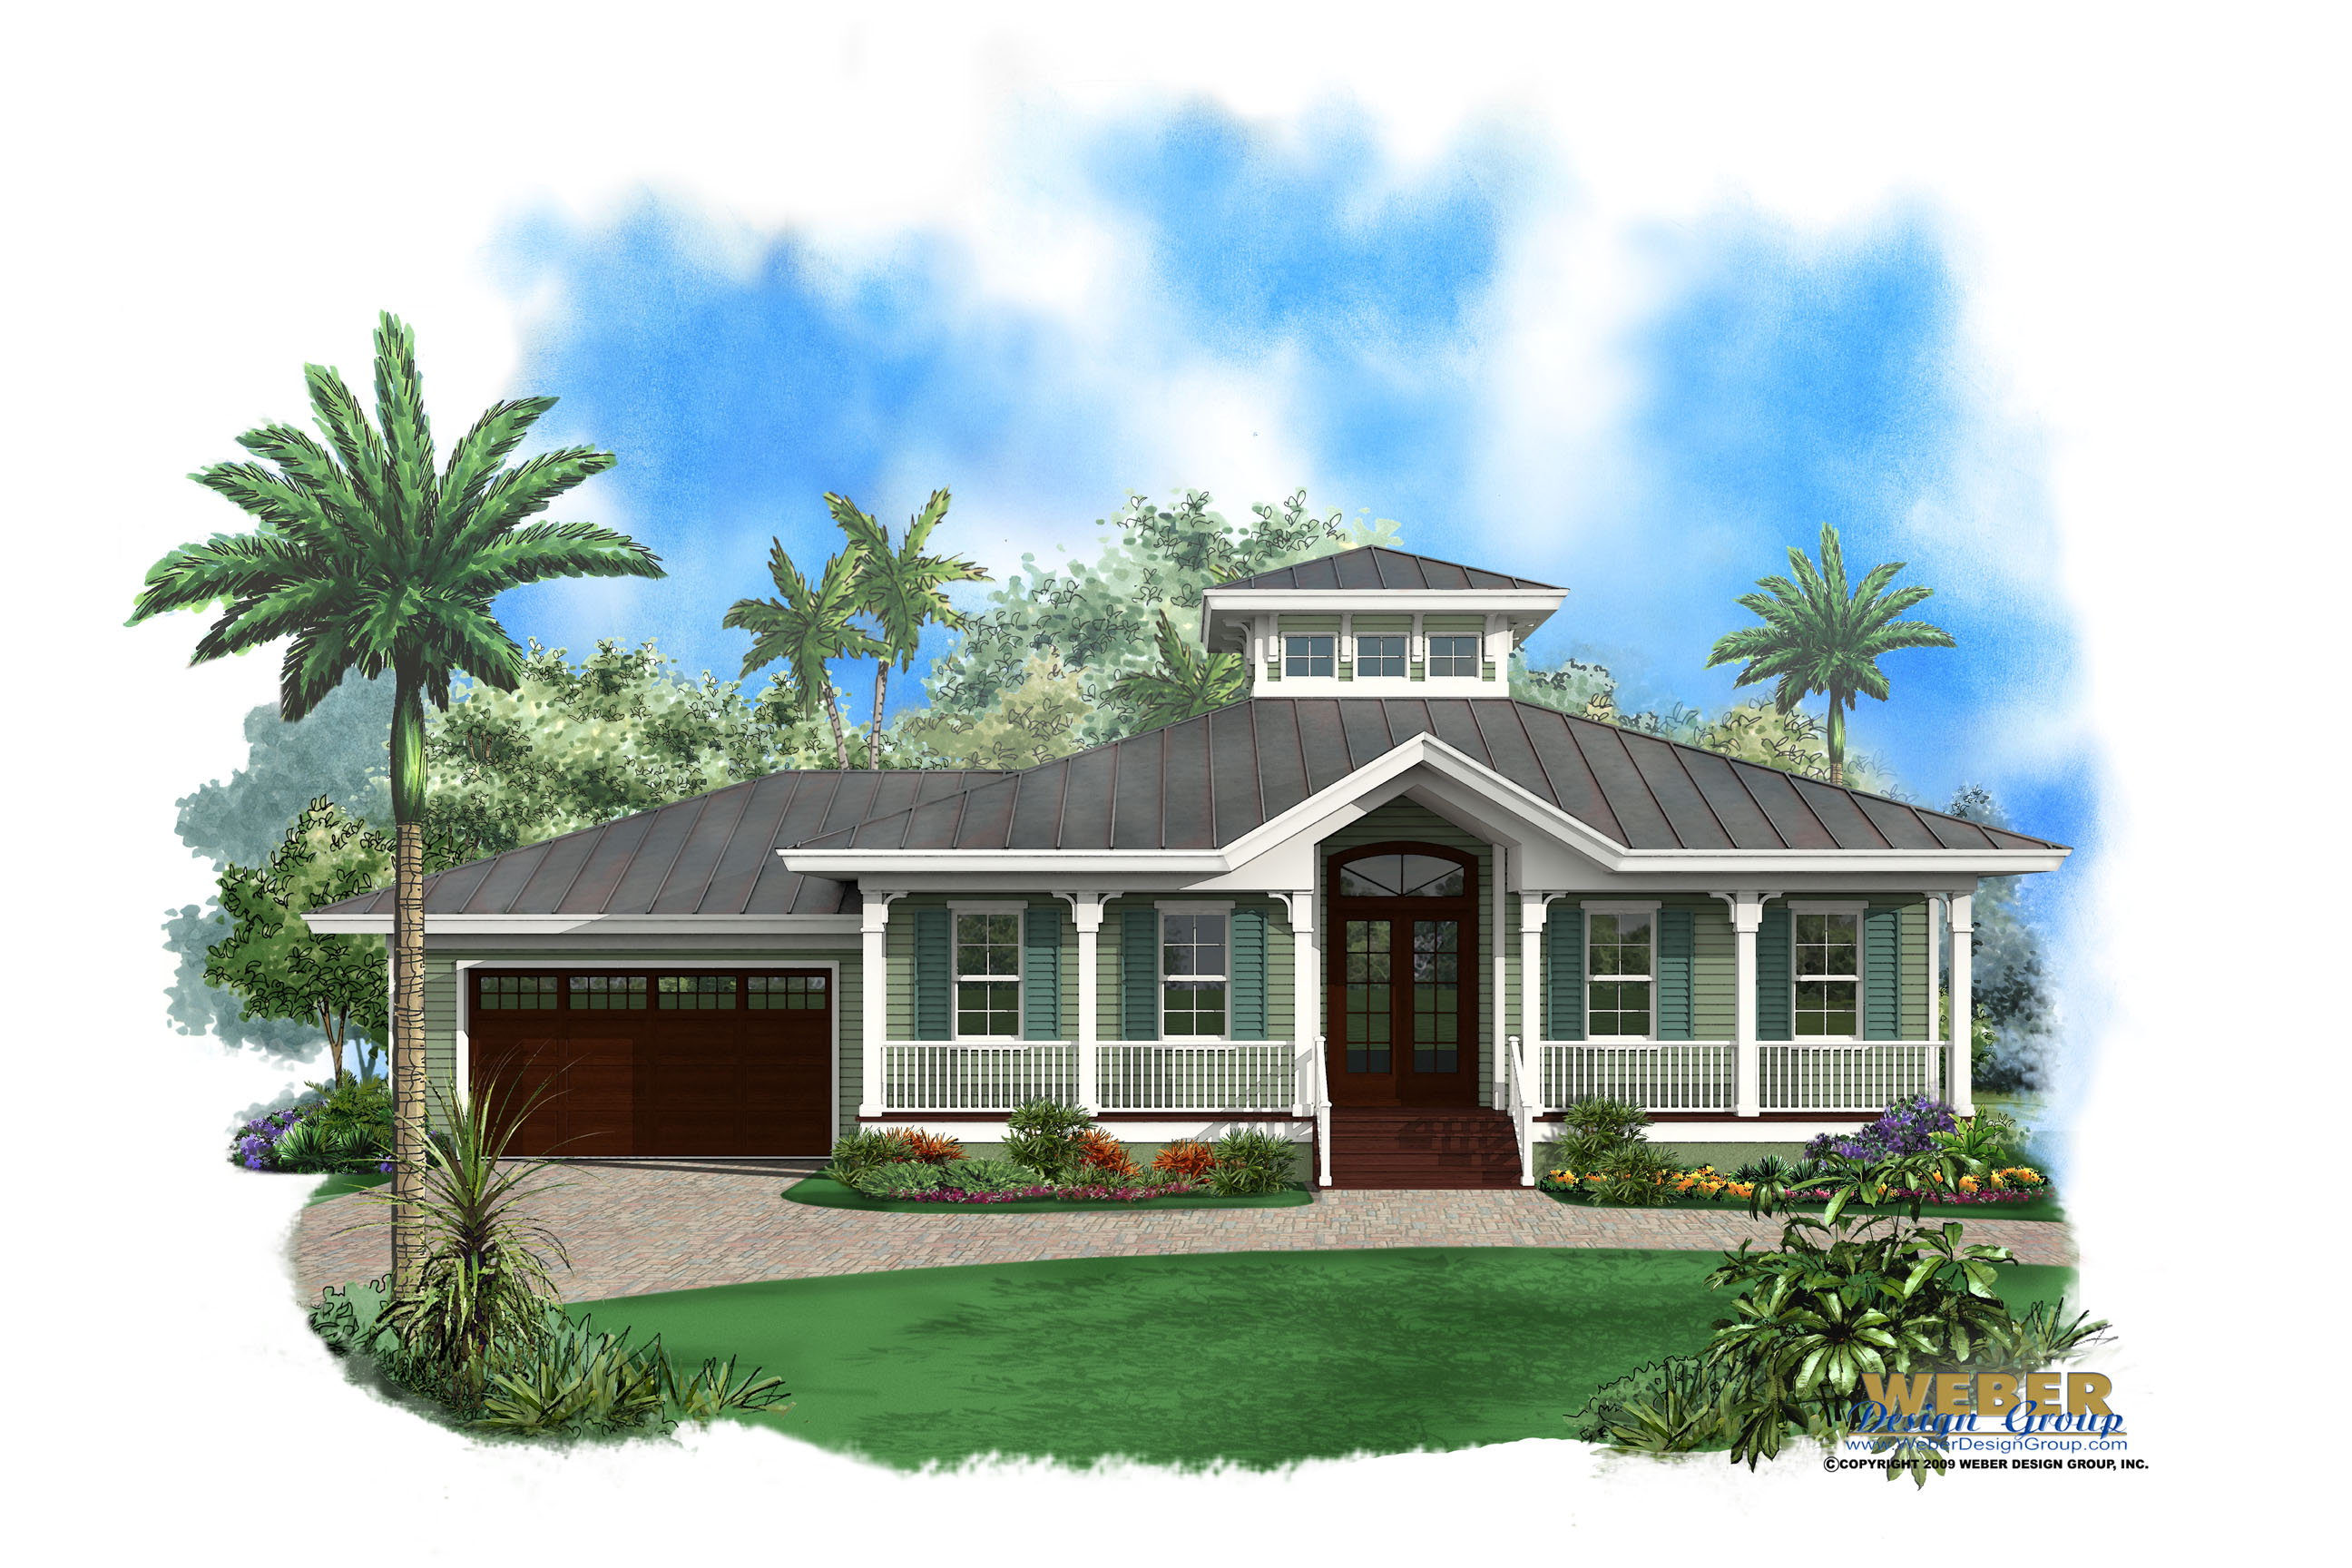 ambergris cay house plan - Coastal House Plans